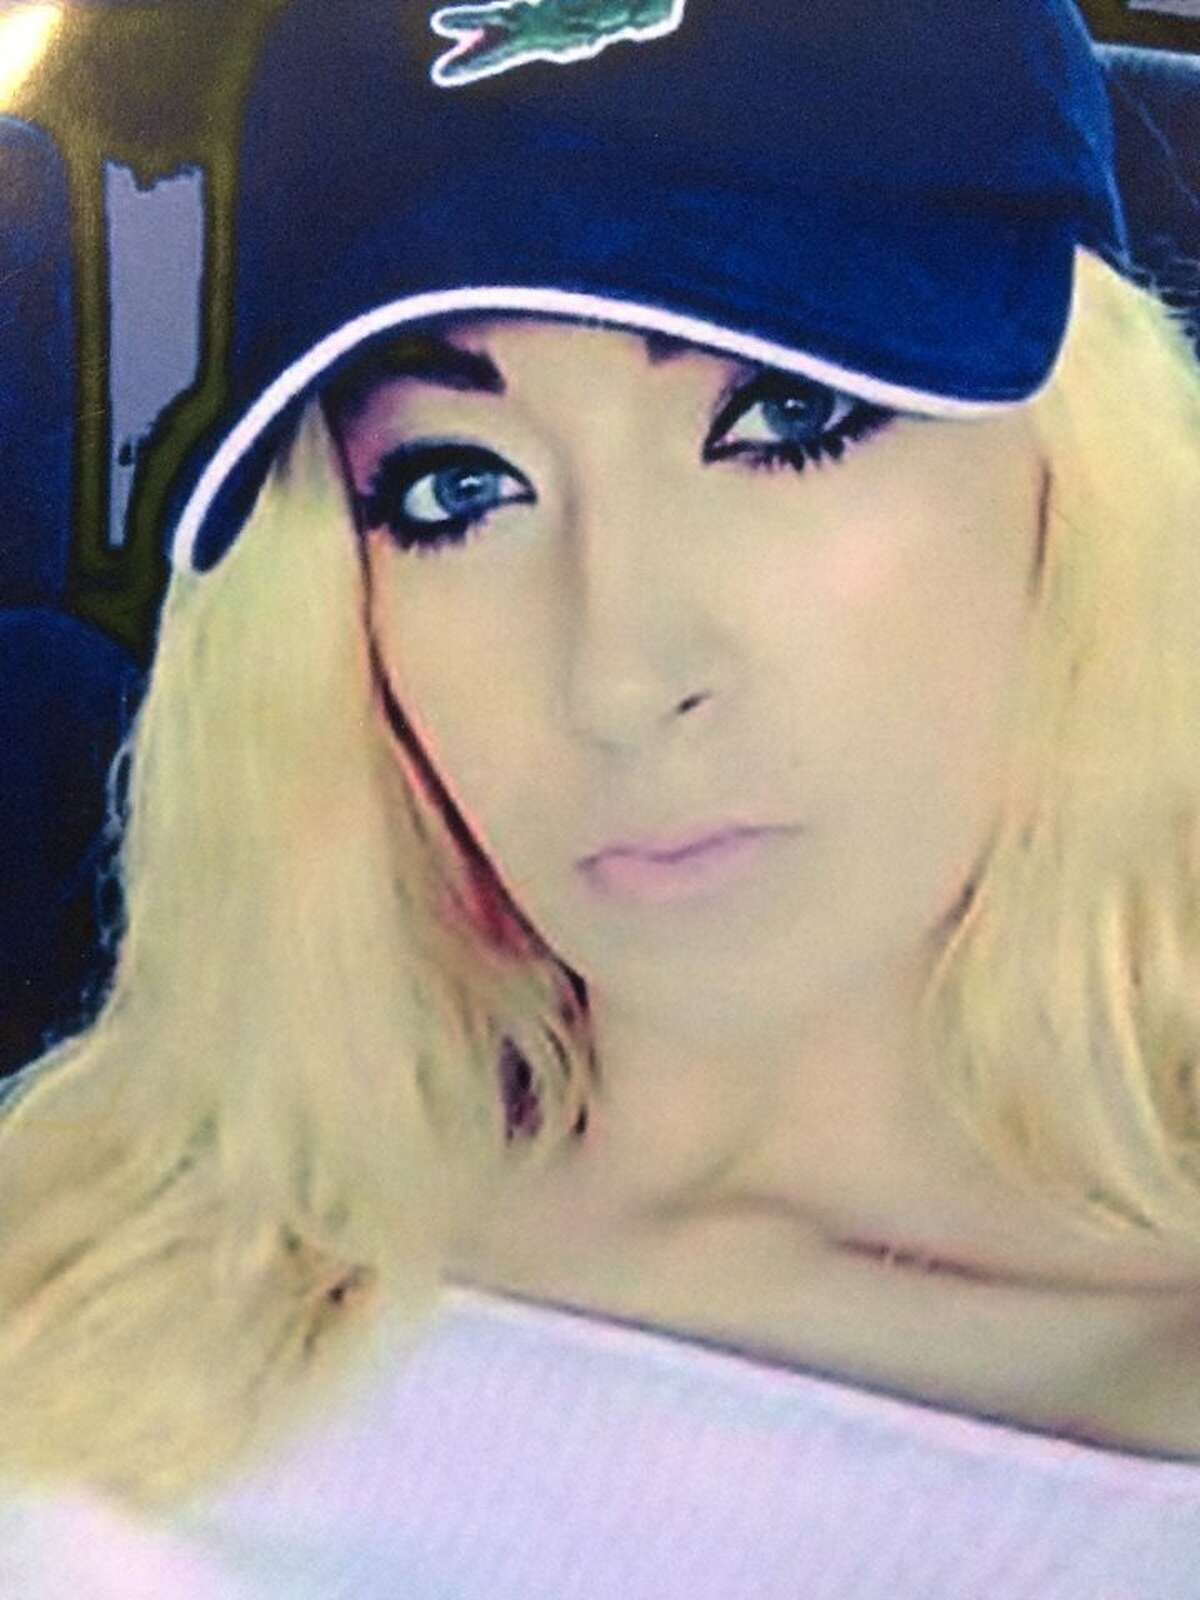 Halle P. Schmidt, 21, of Copake, was reported missing on Sept. 4, 2016. The Columbia County Sheriff's Office is investigating if a body found Saturday, Sept. 10, 2016 is Schmidt. (Columbia County Sheriff's Office) ORG XMIT: mjTWgEb23cw3M0hSBWNR